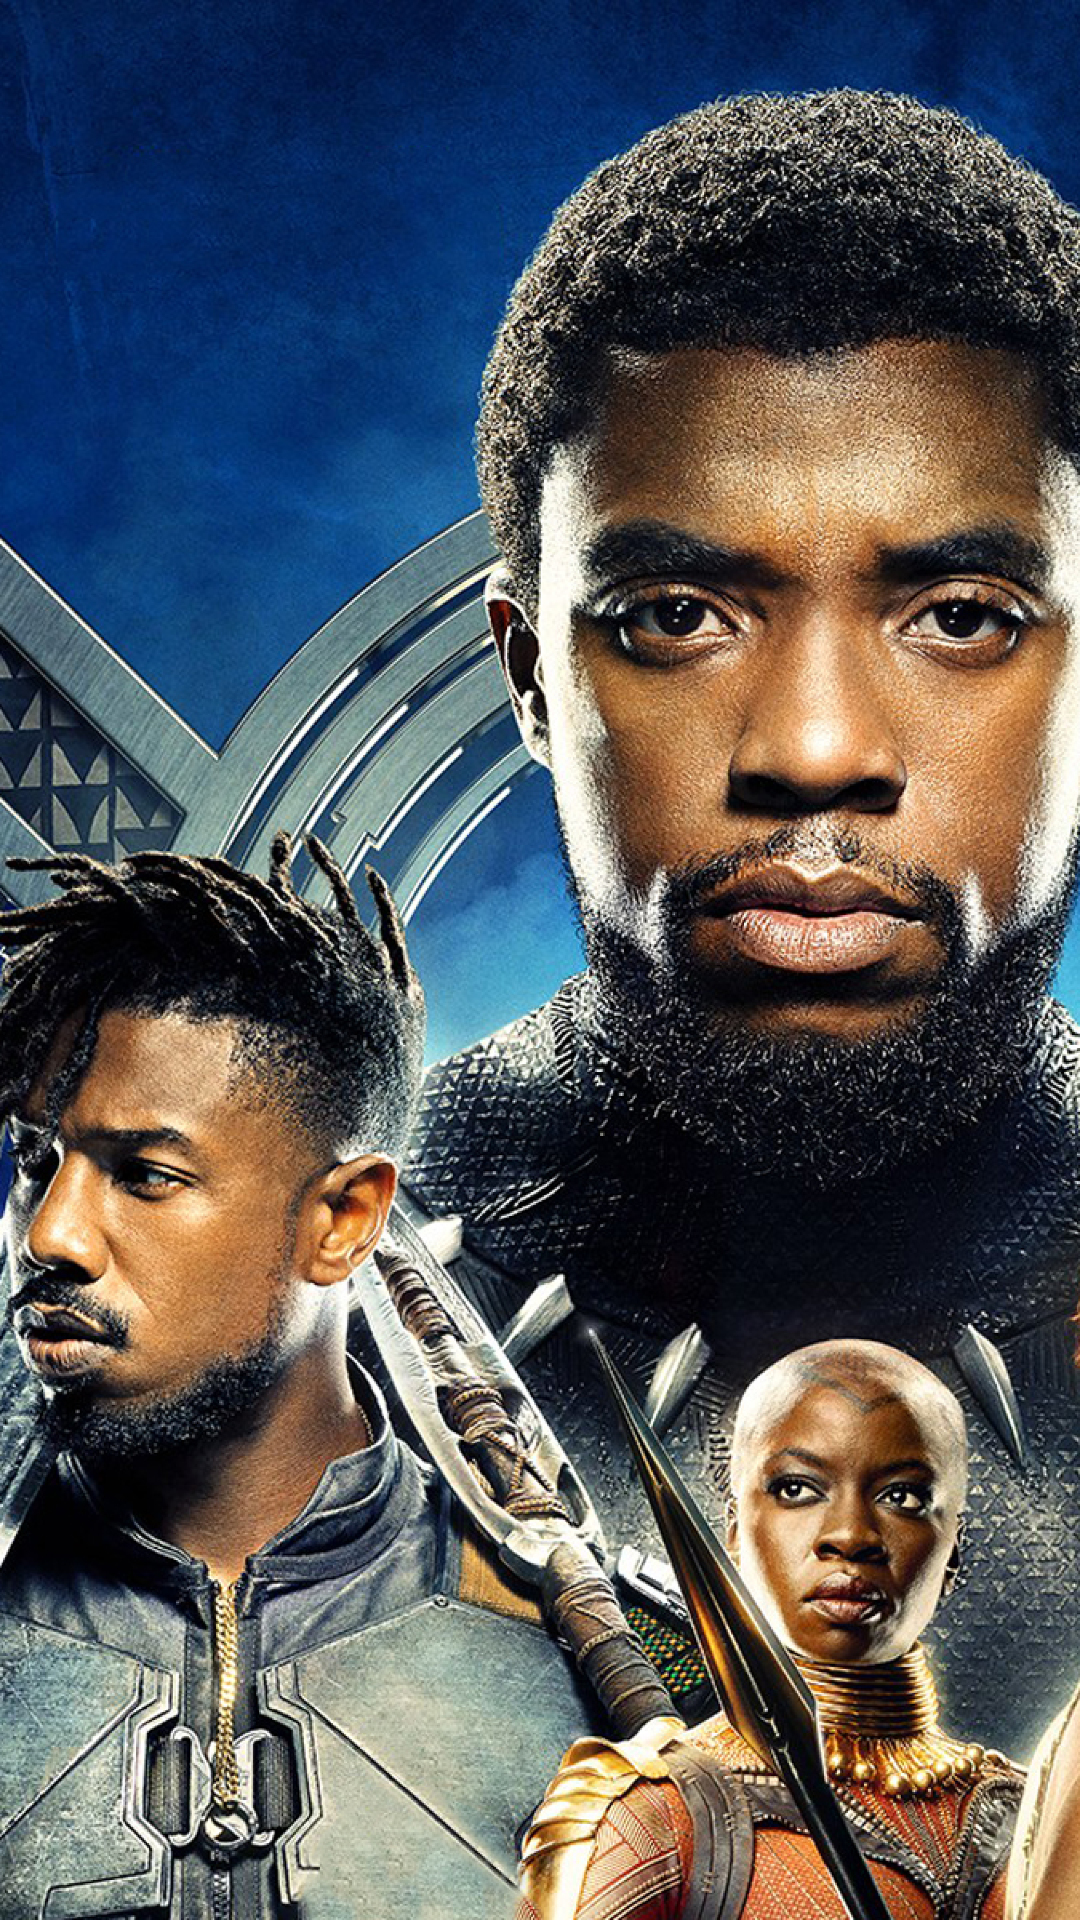 download black panther 2018 movie 480x854 resolution full